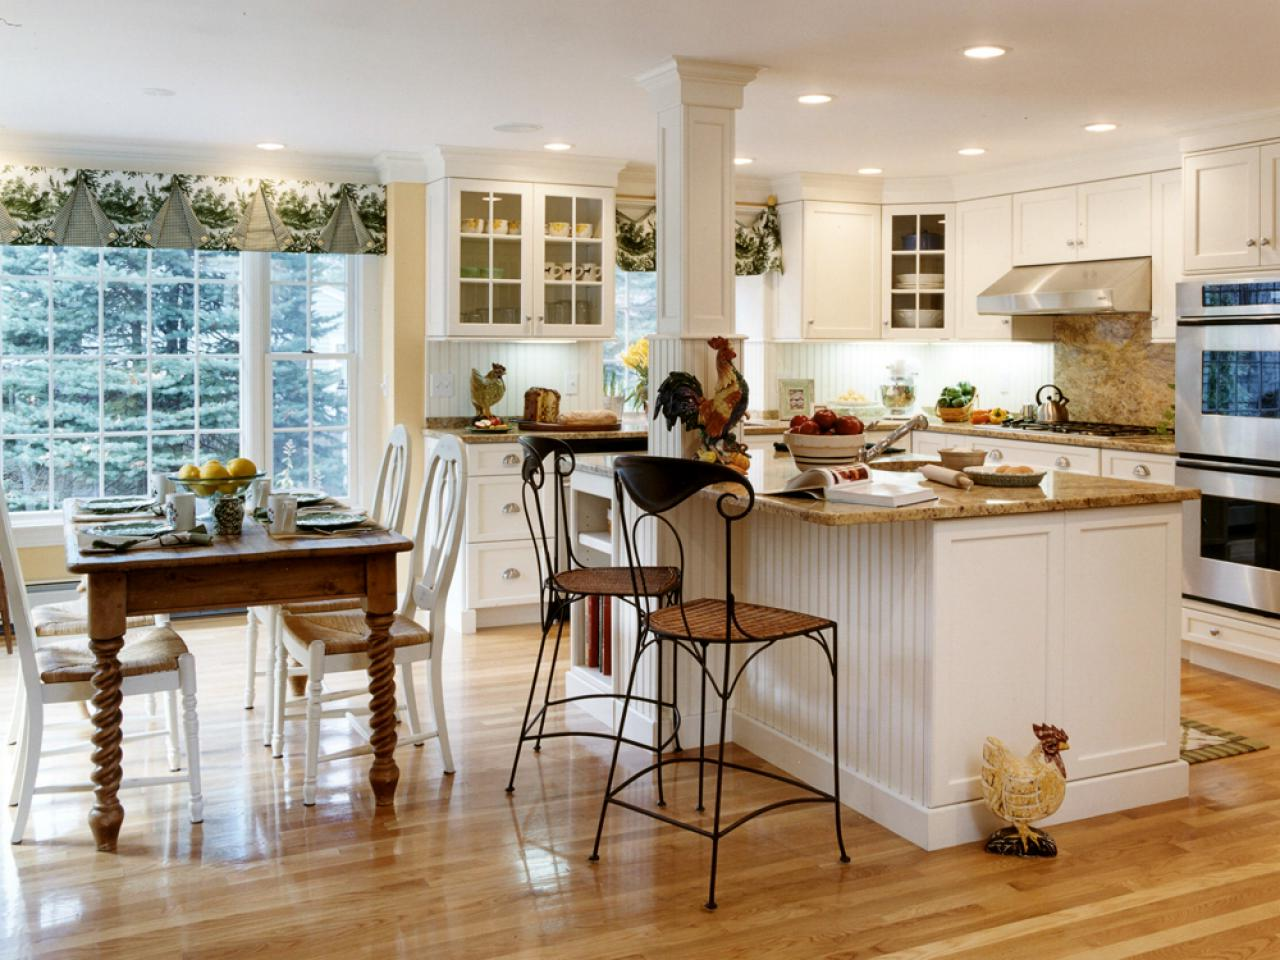 Kitchen design images – Kitchen in country style with wooden floors, wooden table, kitchen island table and bar stools